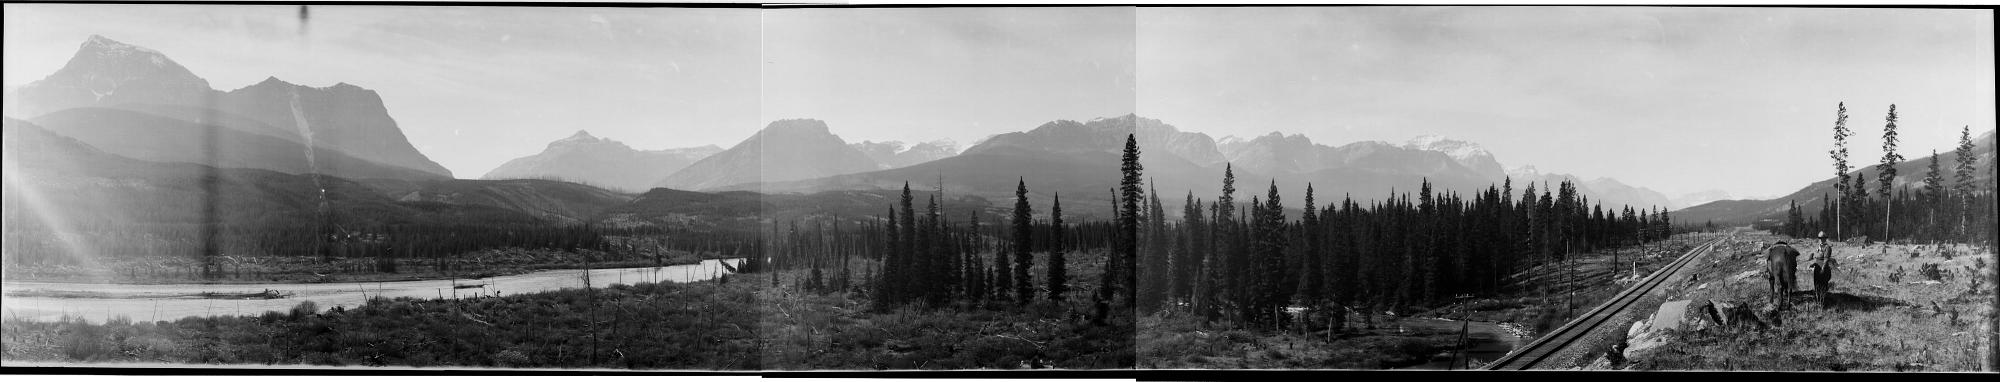 Northeast End of Bow Lake, Canada, 1918